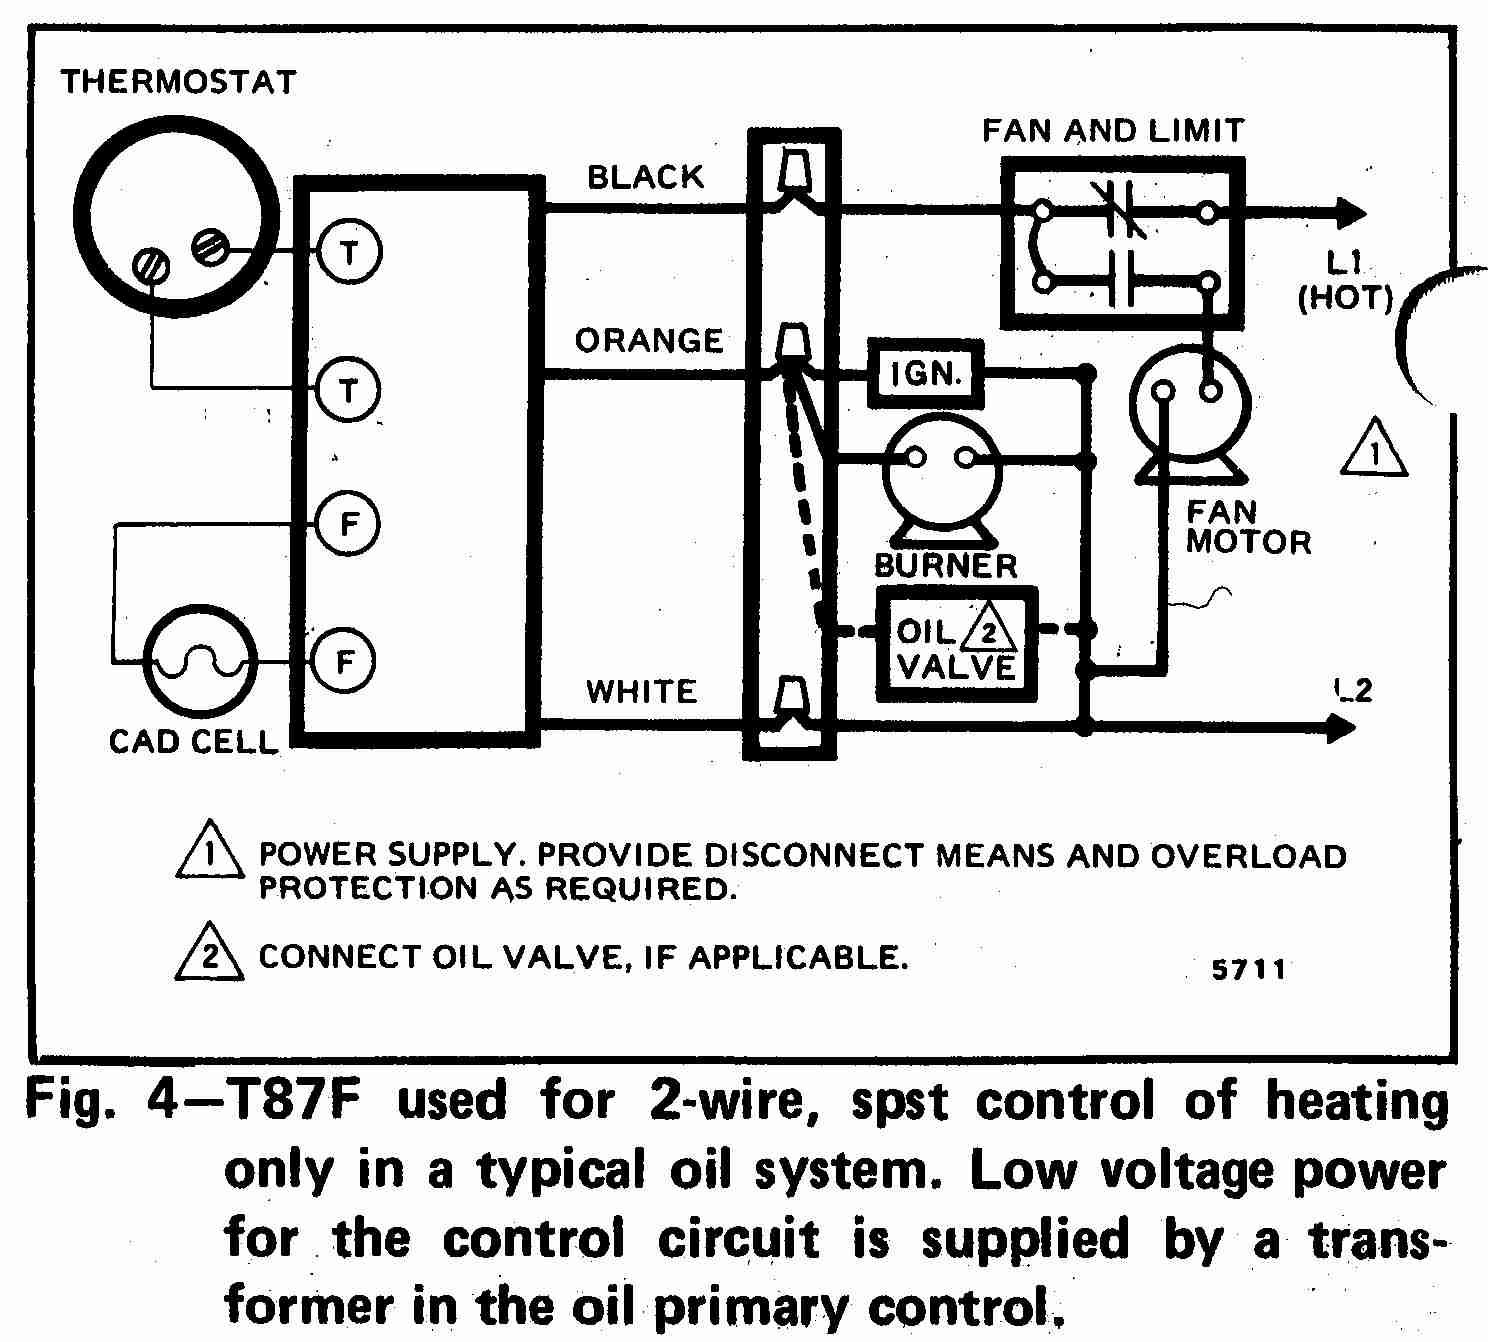 york heat pump control wiring diagram schematics and wiring diagrams goodman package unit wiring diagram diagrams house wiring diagram goodman heat pump elementary